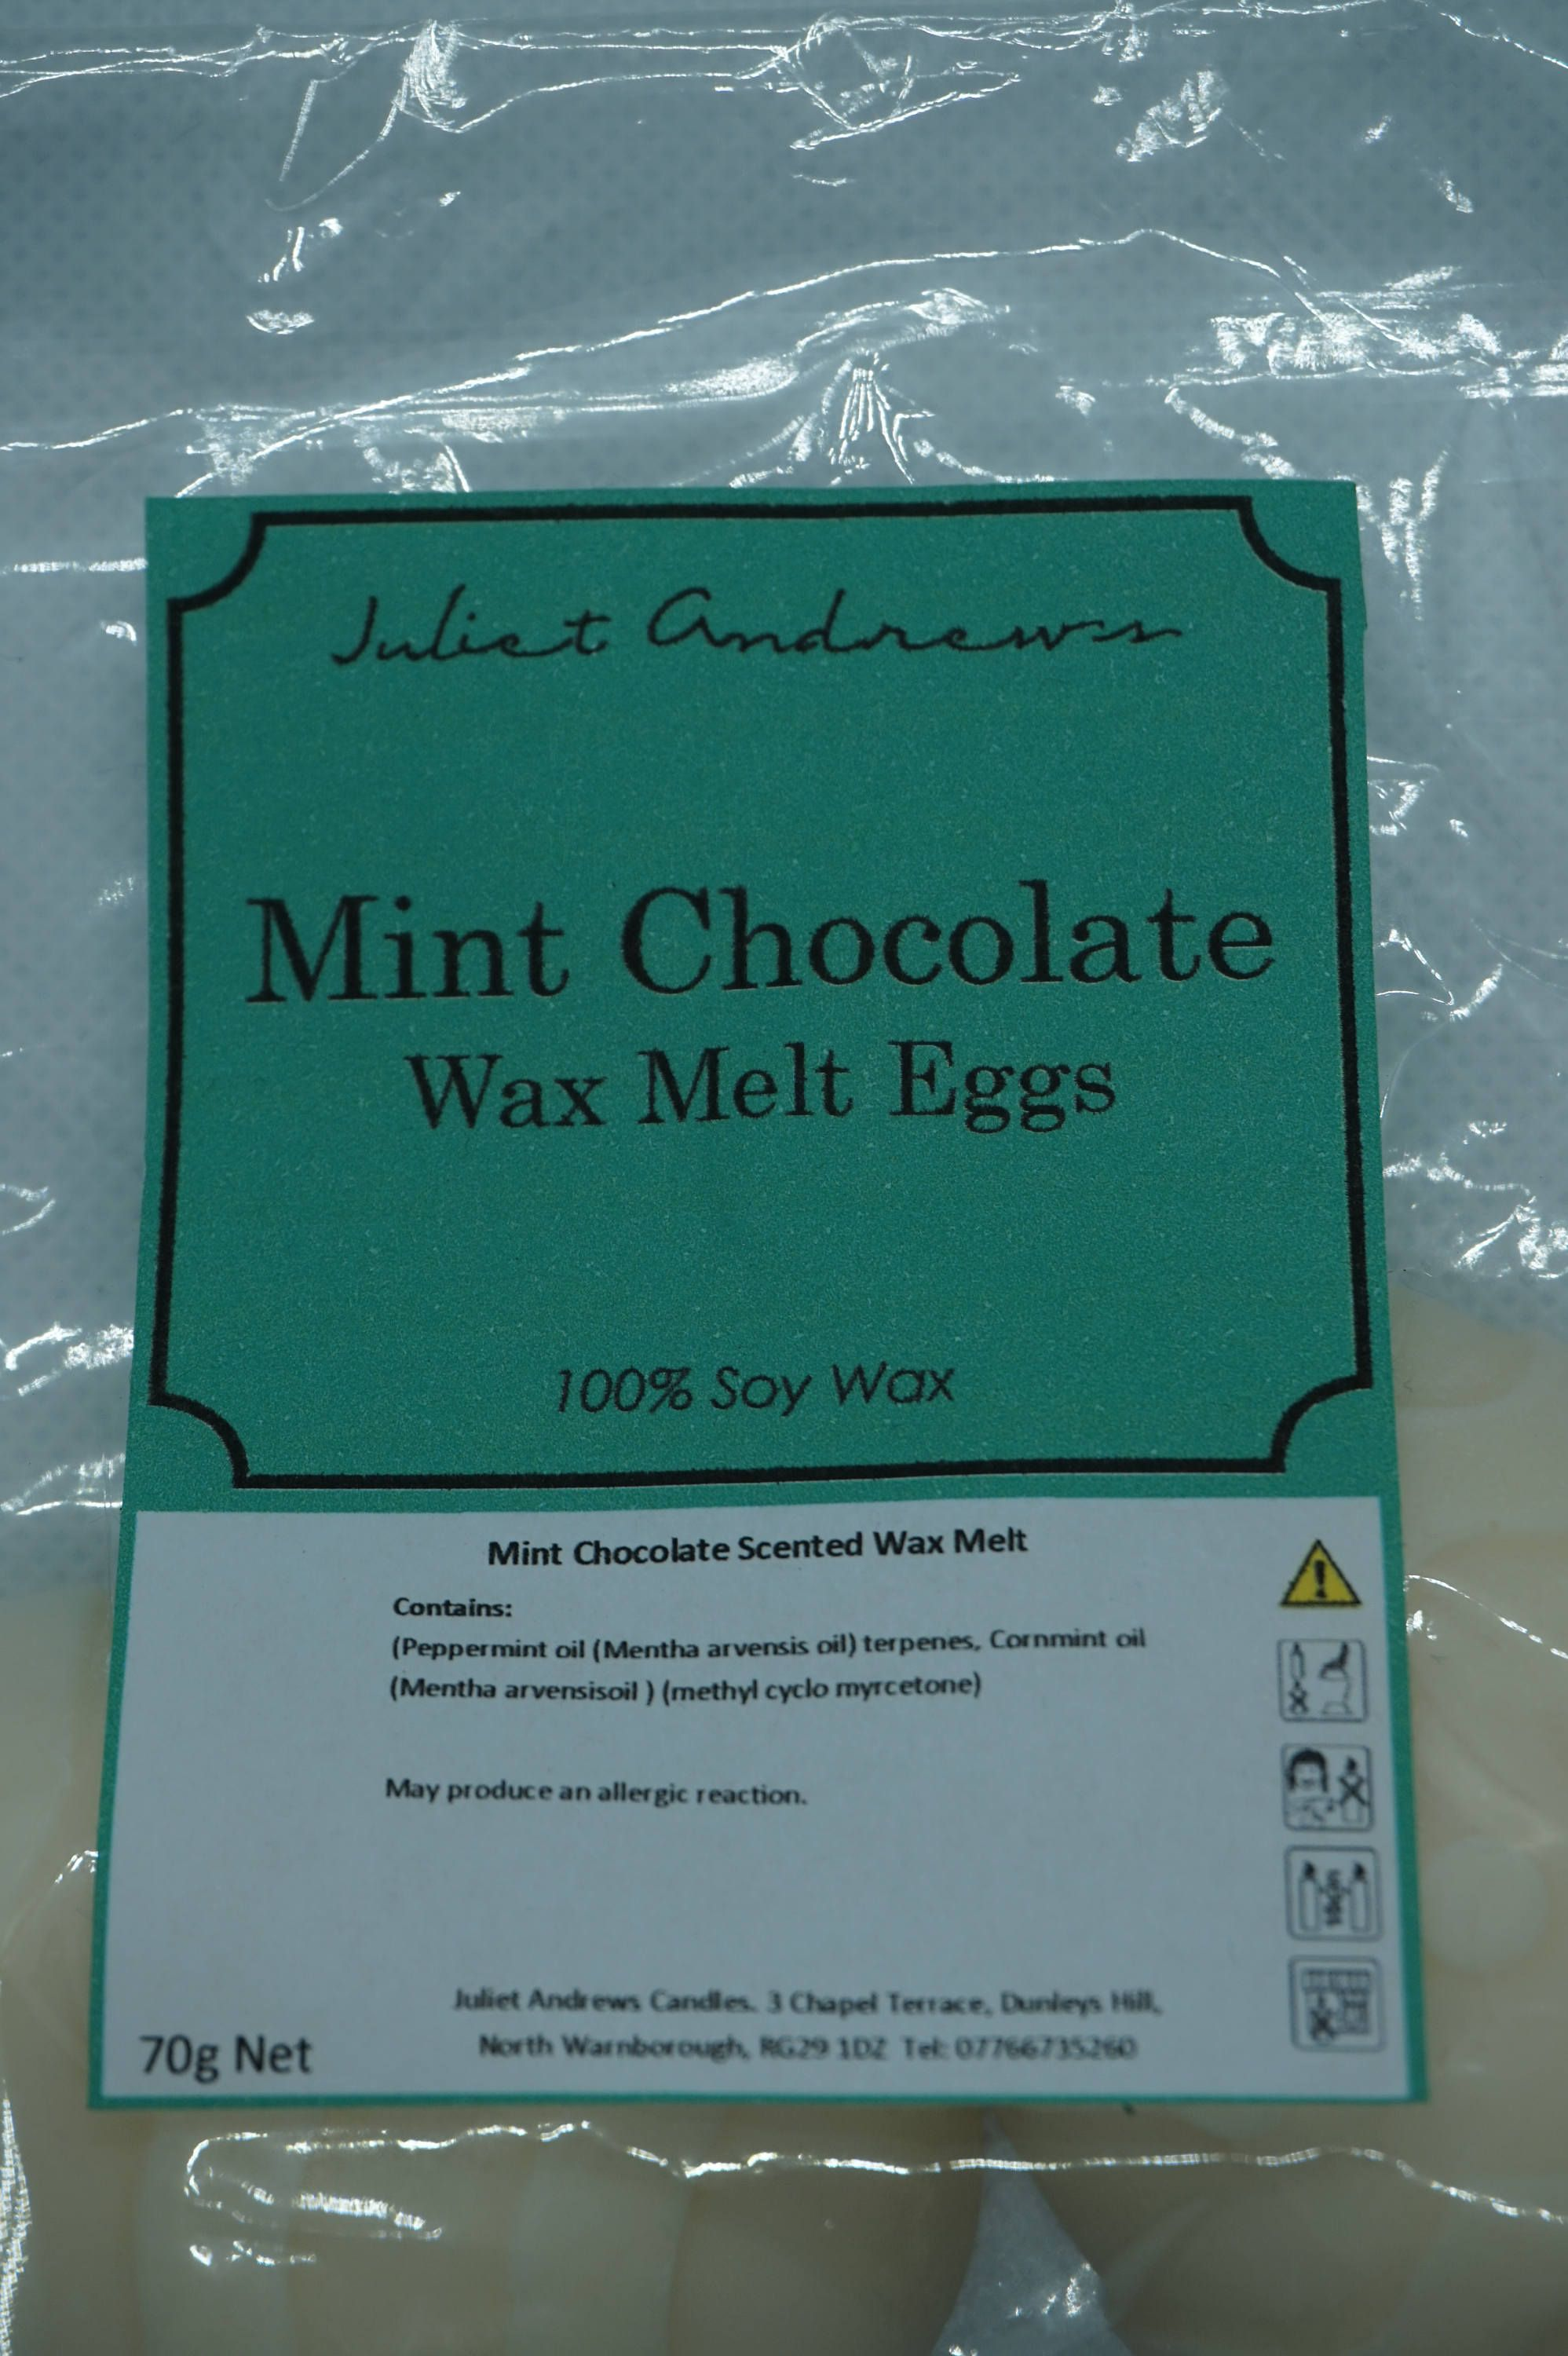 Mint chocolate scented easter egg shaped soy wax melts by juliet mint chocolate scented easter egg shaped soy wax melts by juliet andrews candles alternative easter gift by julietandrewscandles on etsy 250 eastereggs negle Choice Image